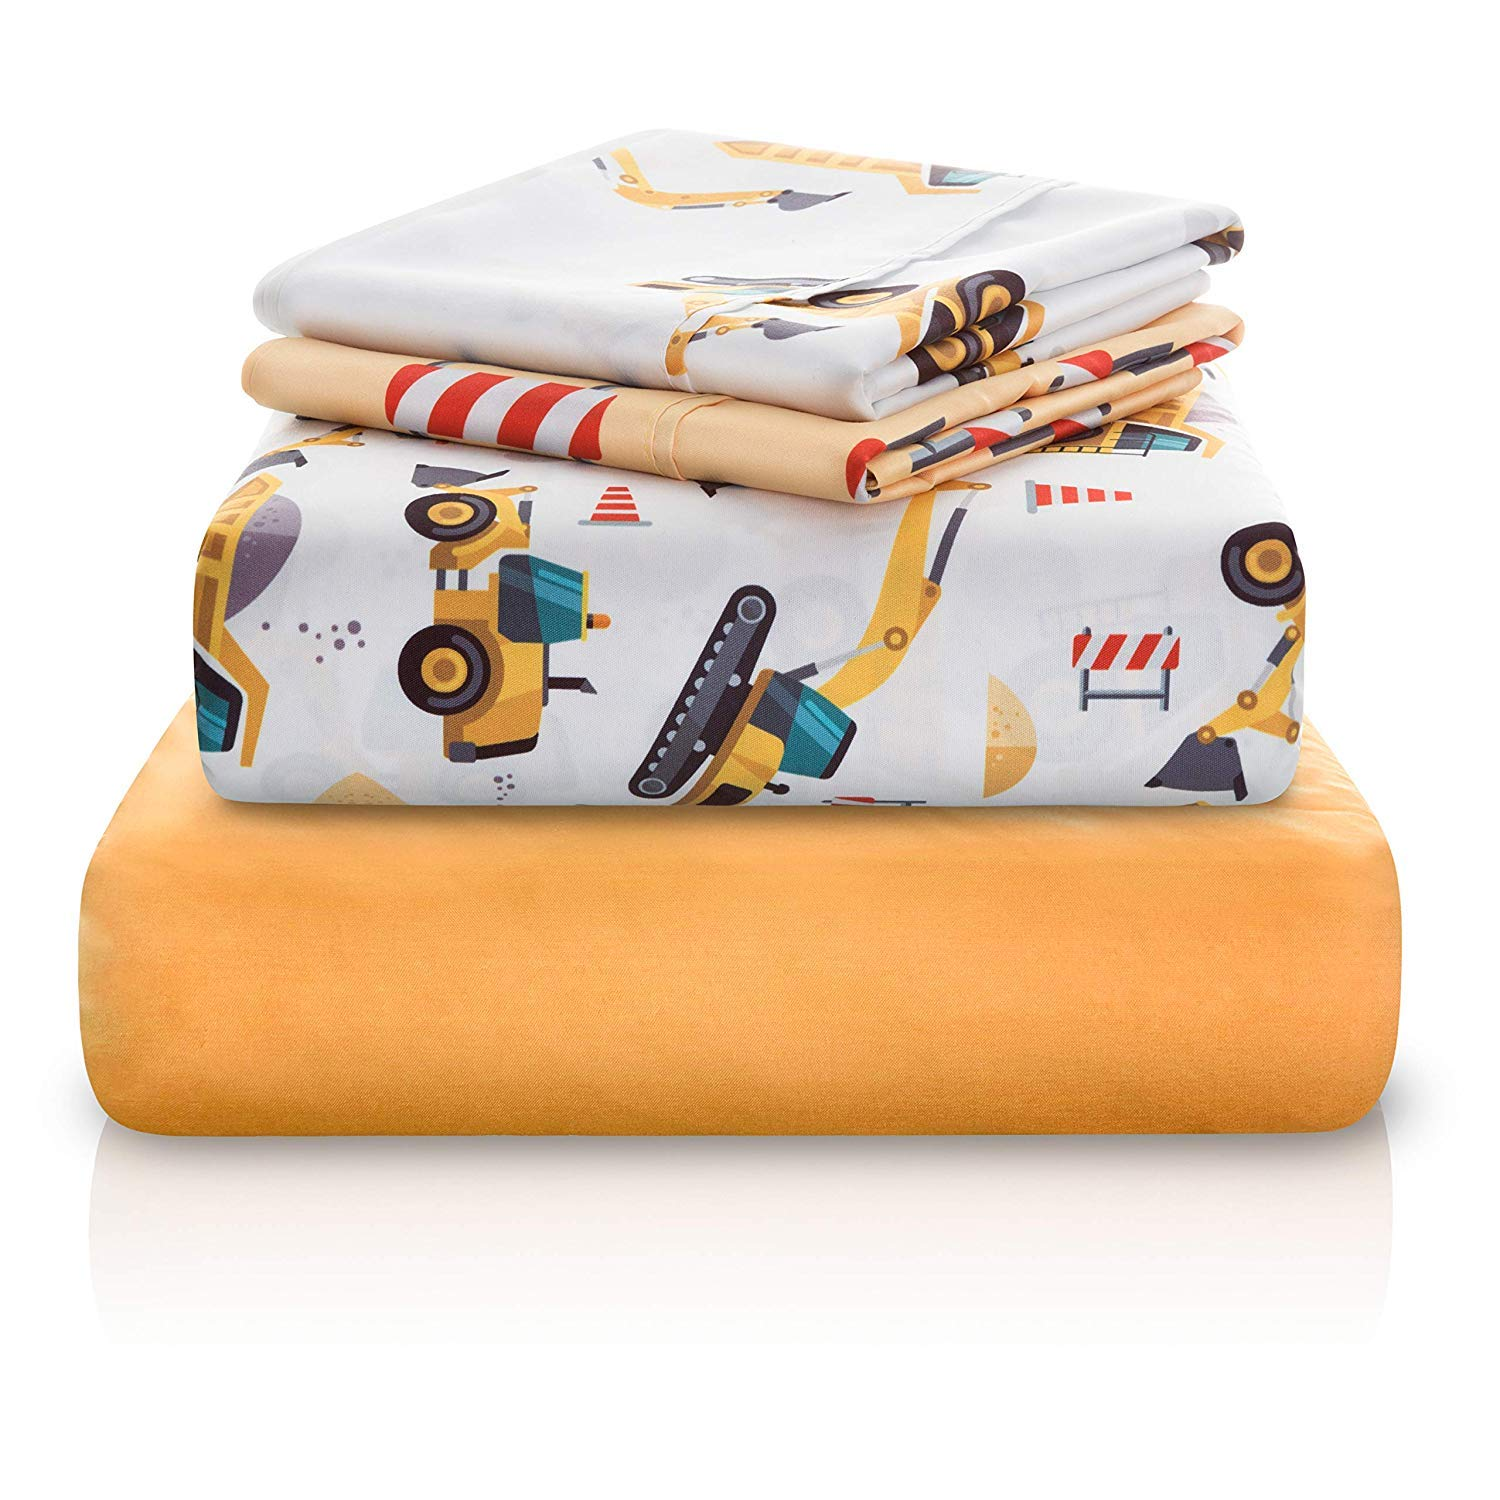 Chital Twin Bed Sheets for Boys | 4 Pc Kids Bedding Set | Construction & Tractor Print | Durable Super-Soft, Double-Brushed Microfiber | 1 Flat & 1 Fitted Sheet, 2 Pillow Cases | 15'' Deep